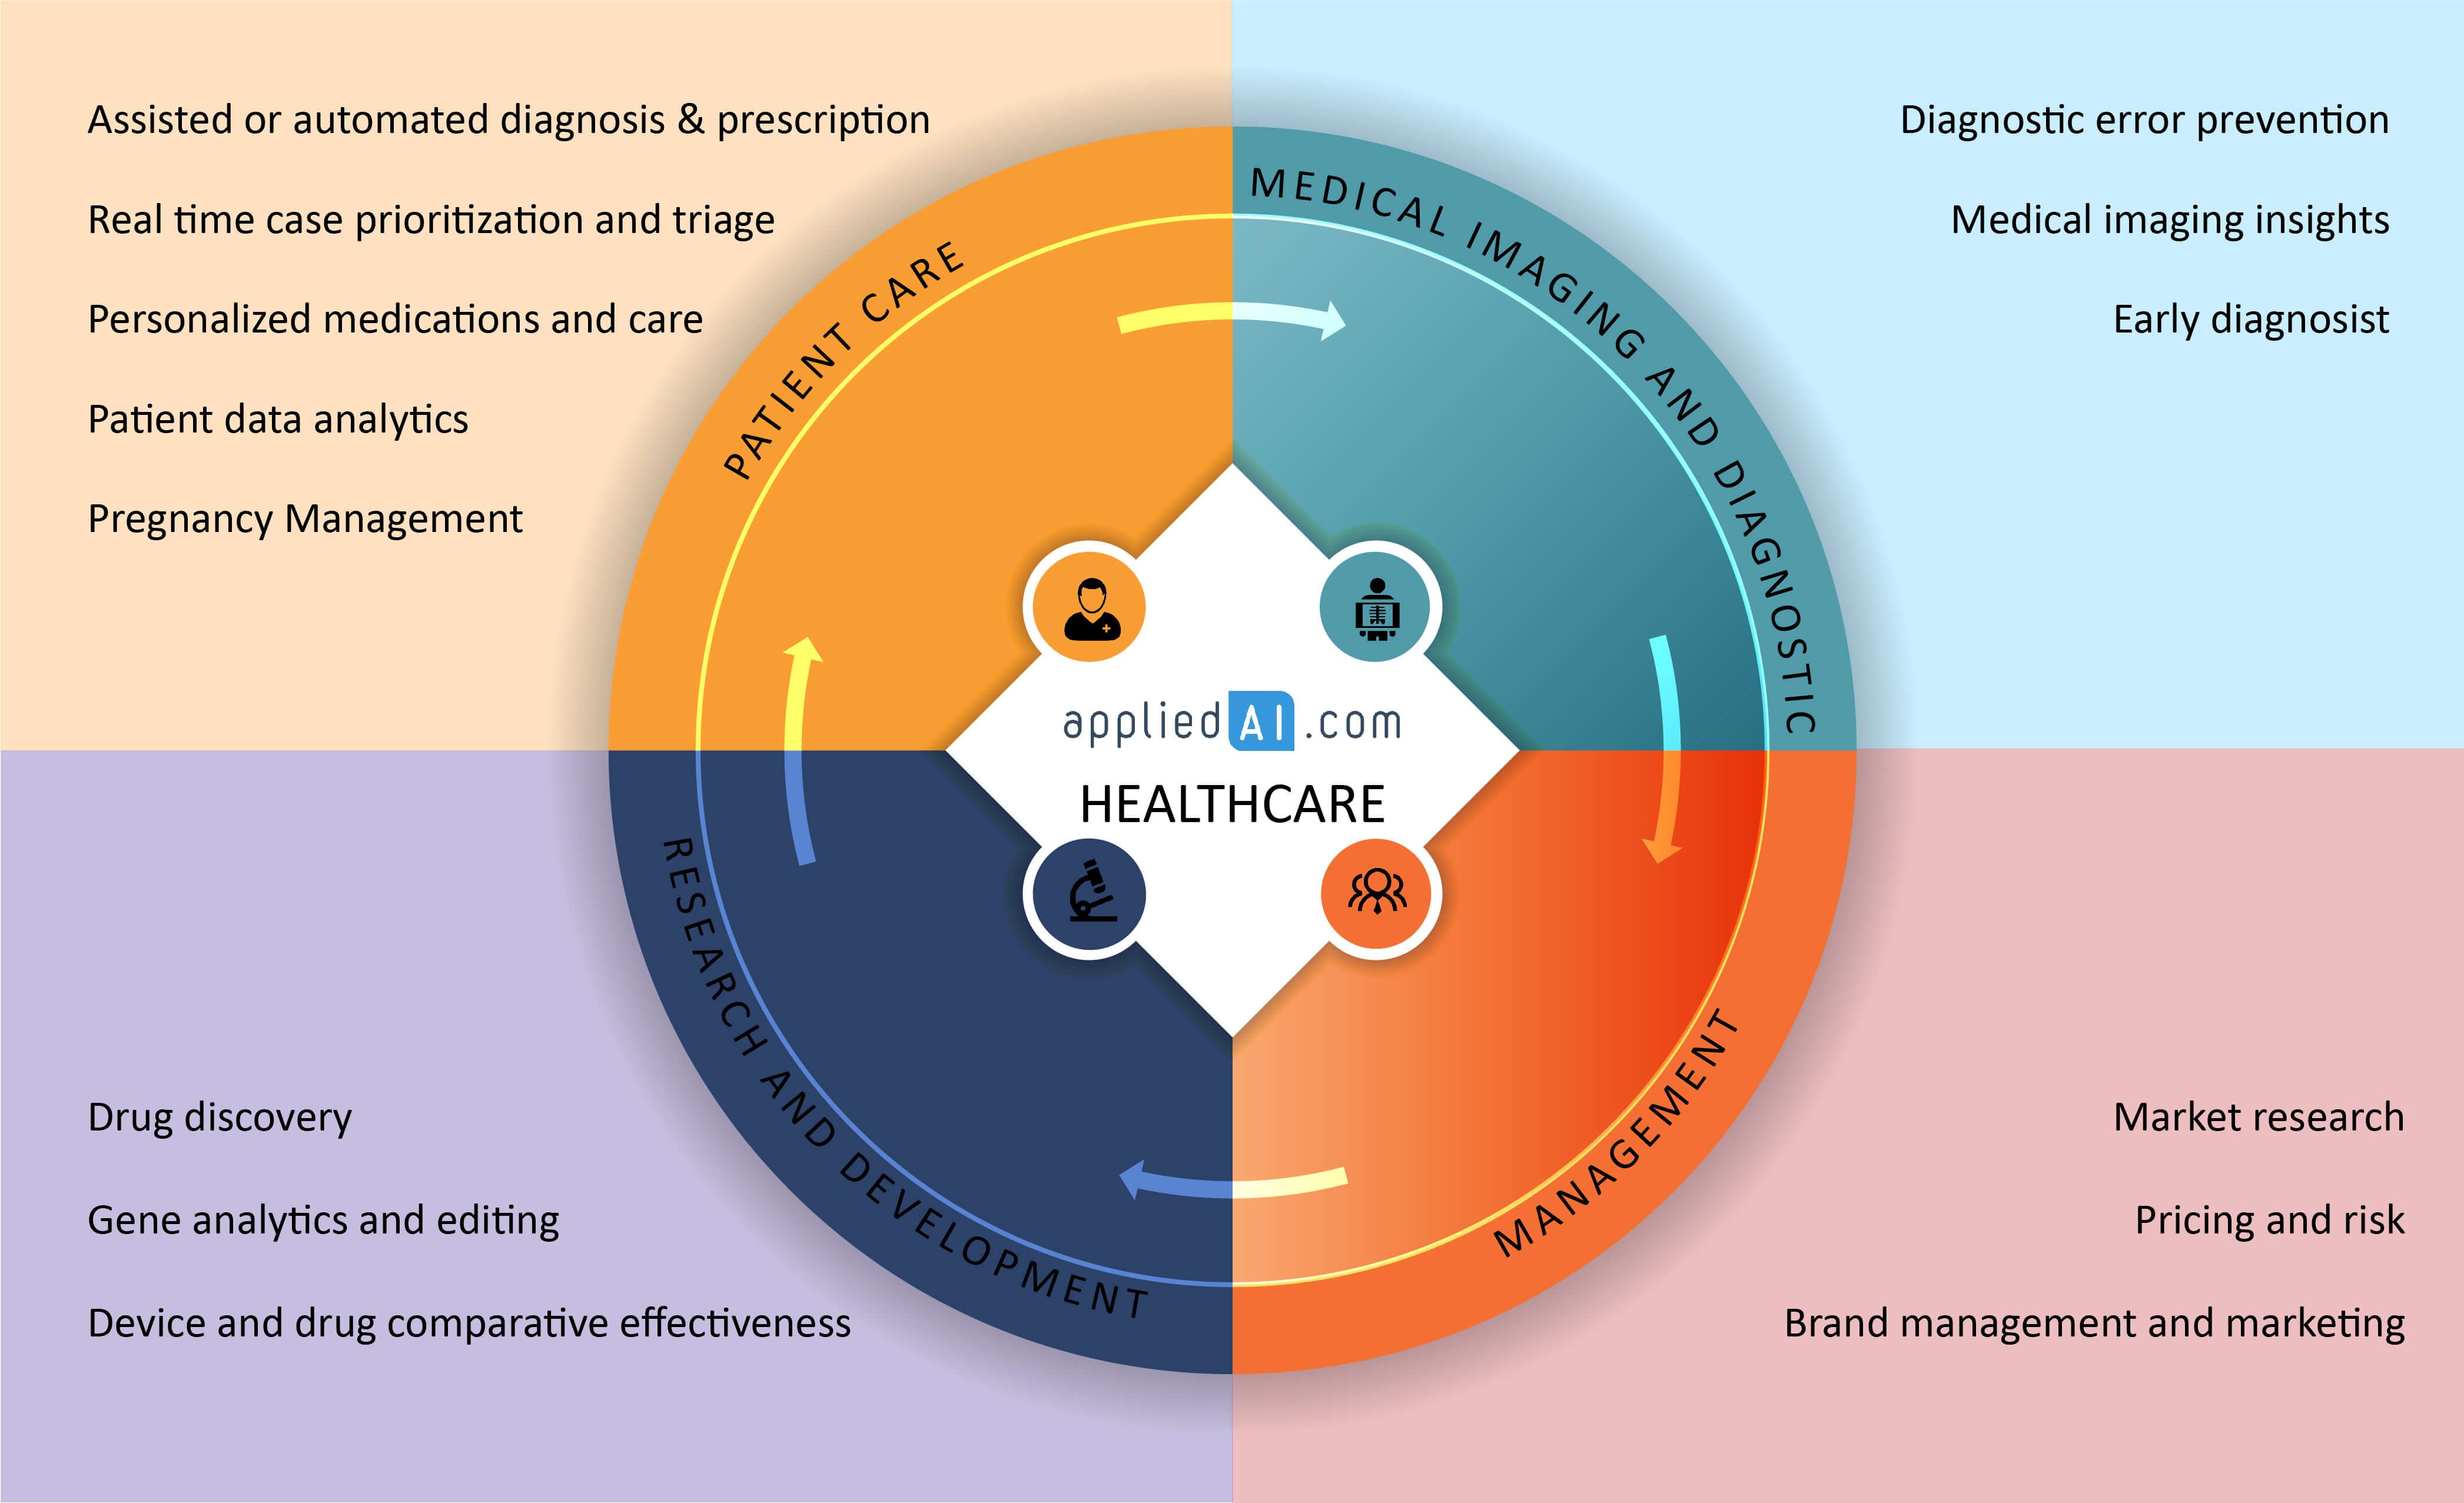 AI usecases/application areas in healthcare